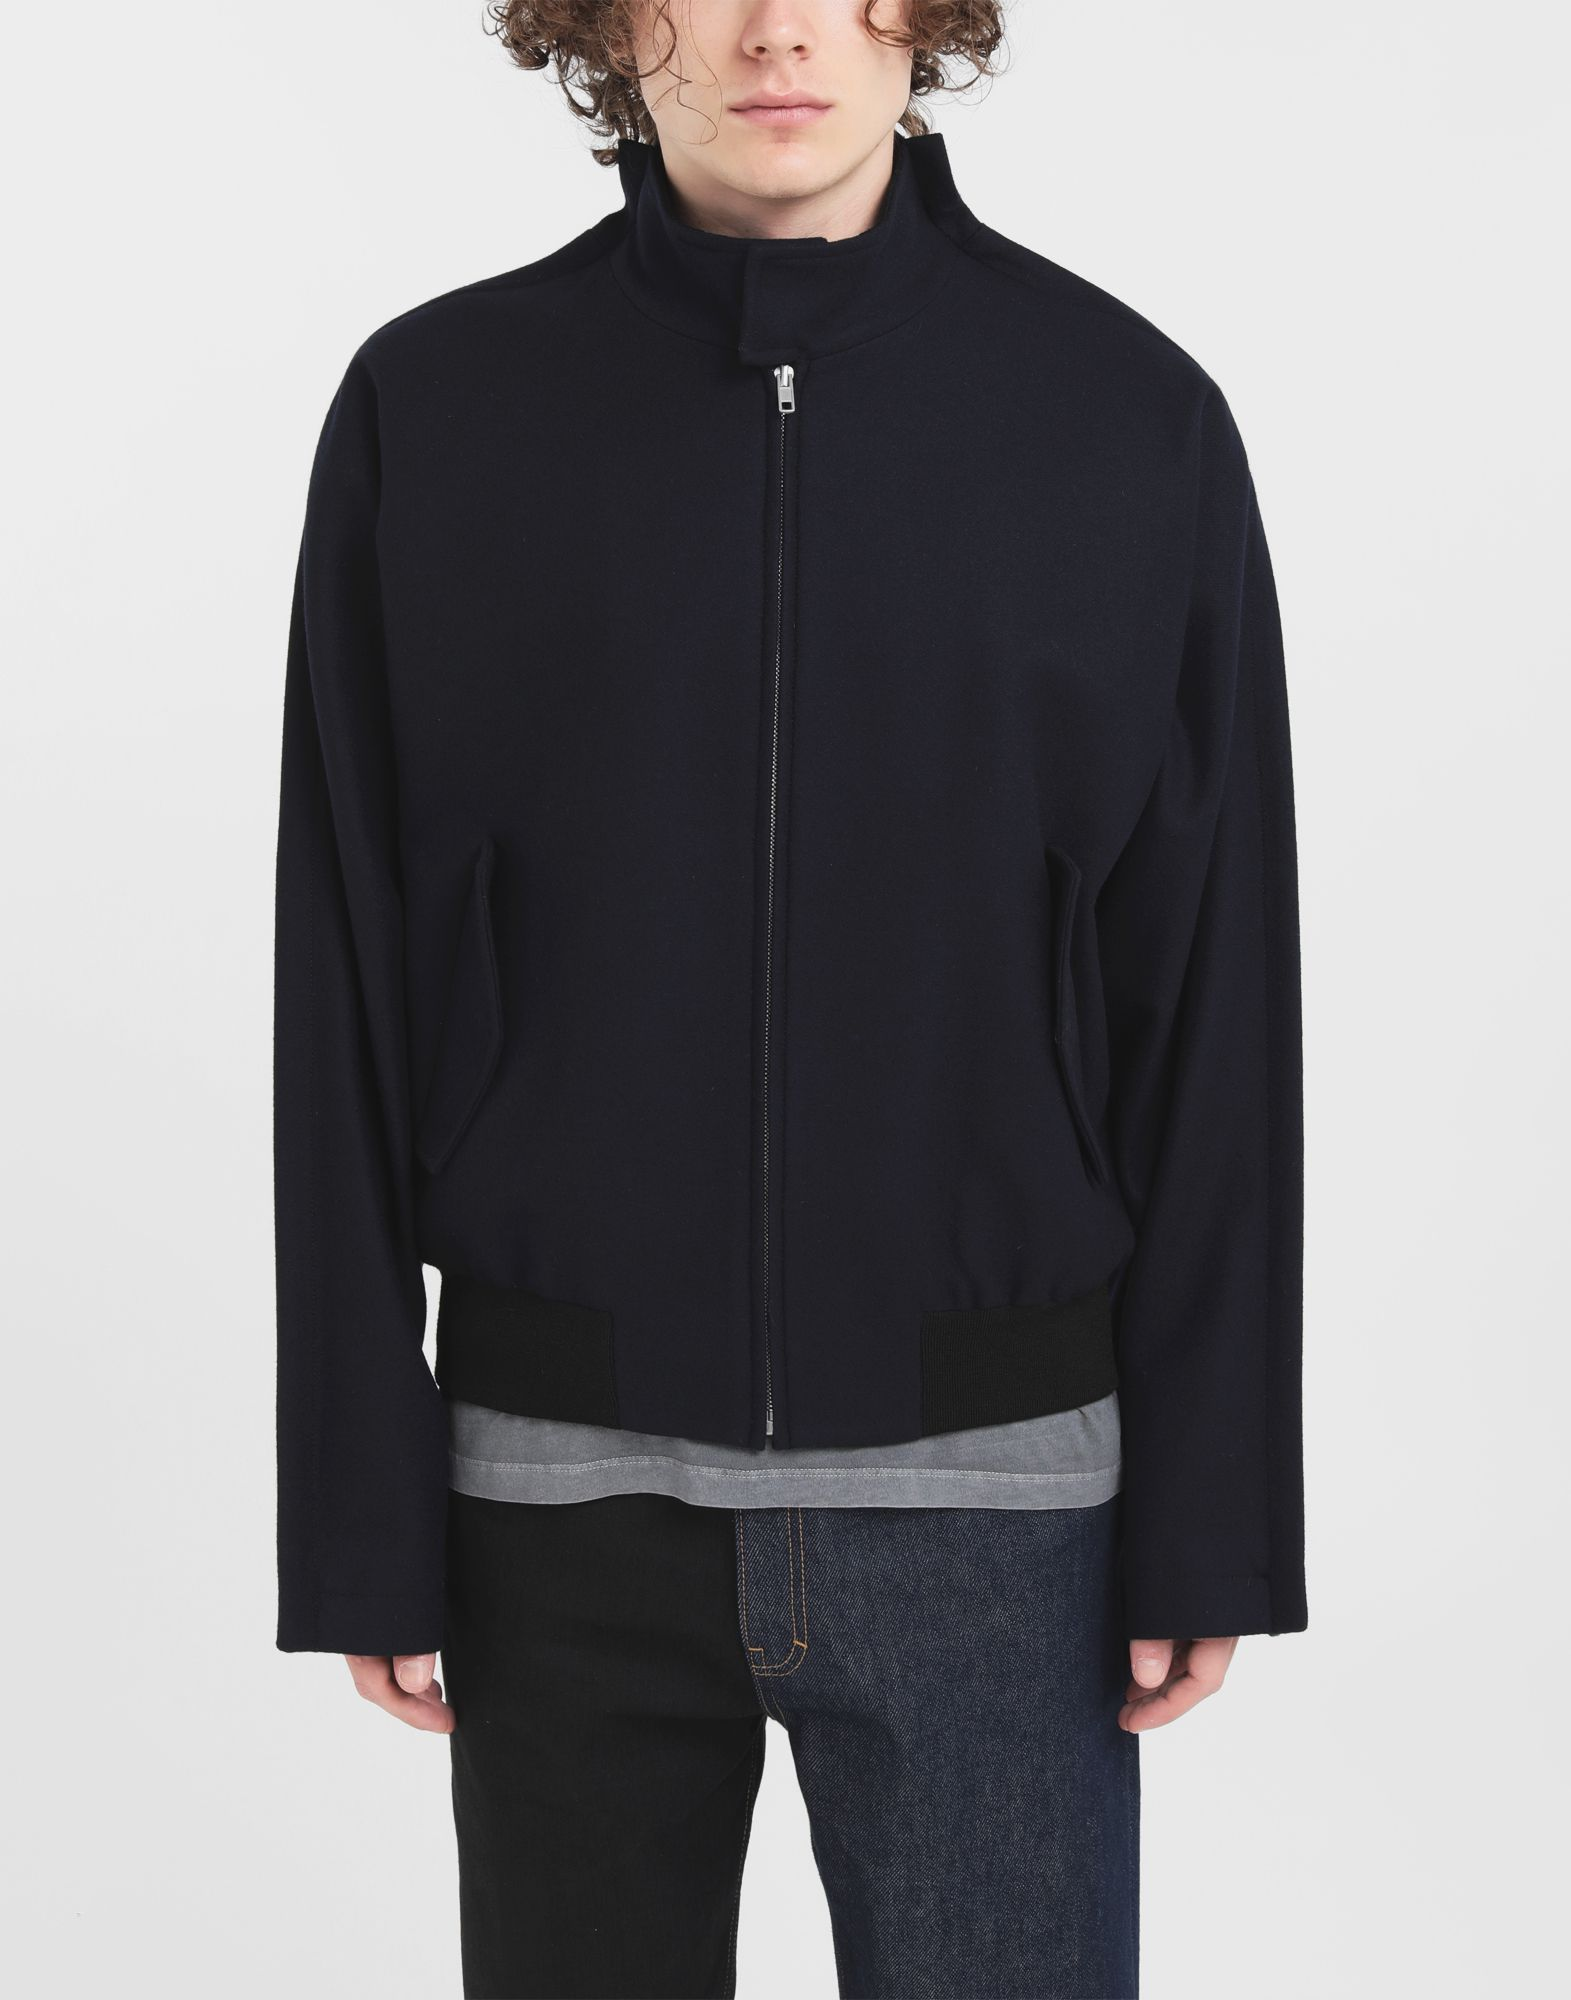 MAISON MARGIELA Outline wool jacket Jacket Man r